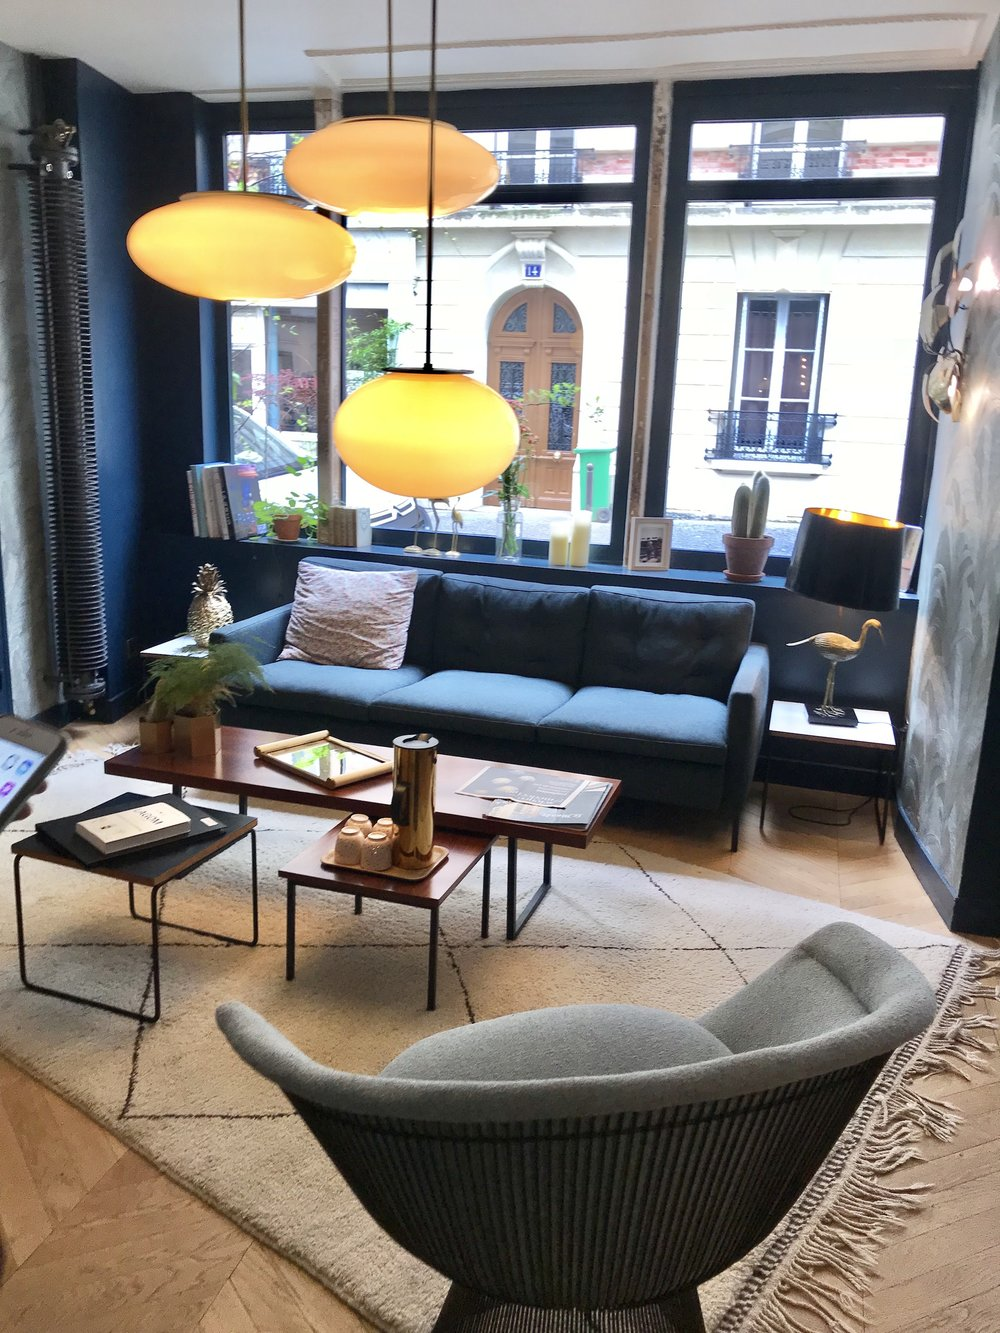 Hotel Henriette paris boutique hotel review